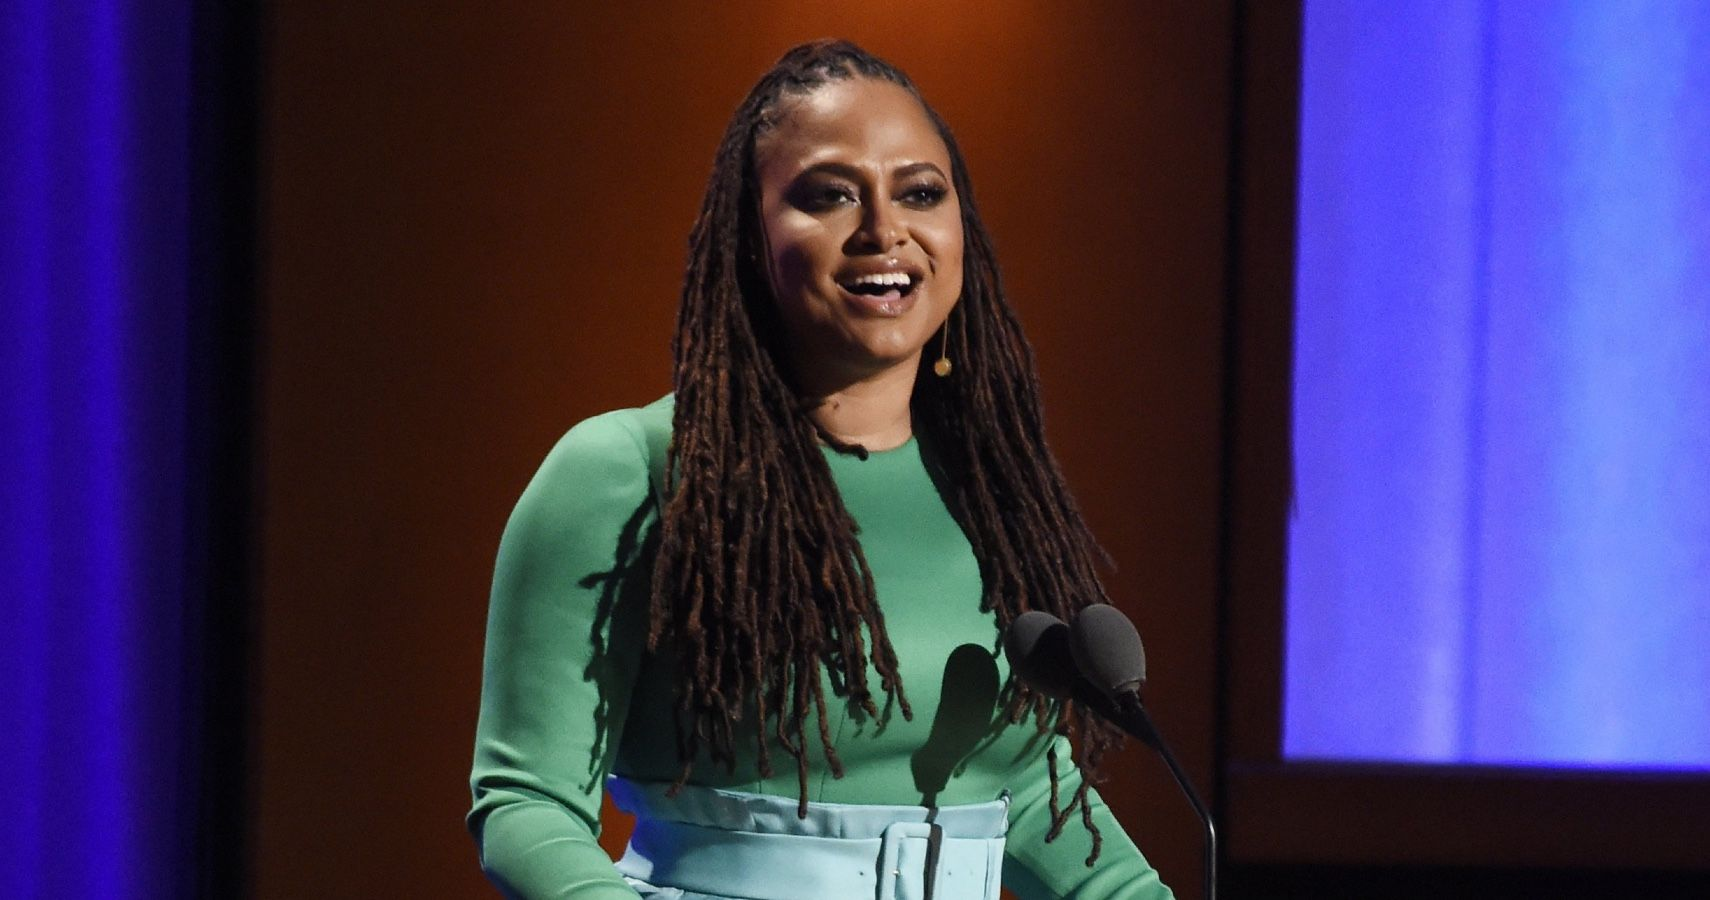 Ava DuVernay Has One Word For Armed Trump Supporters In Maricopa County